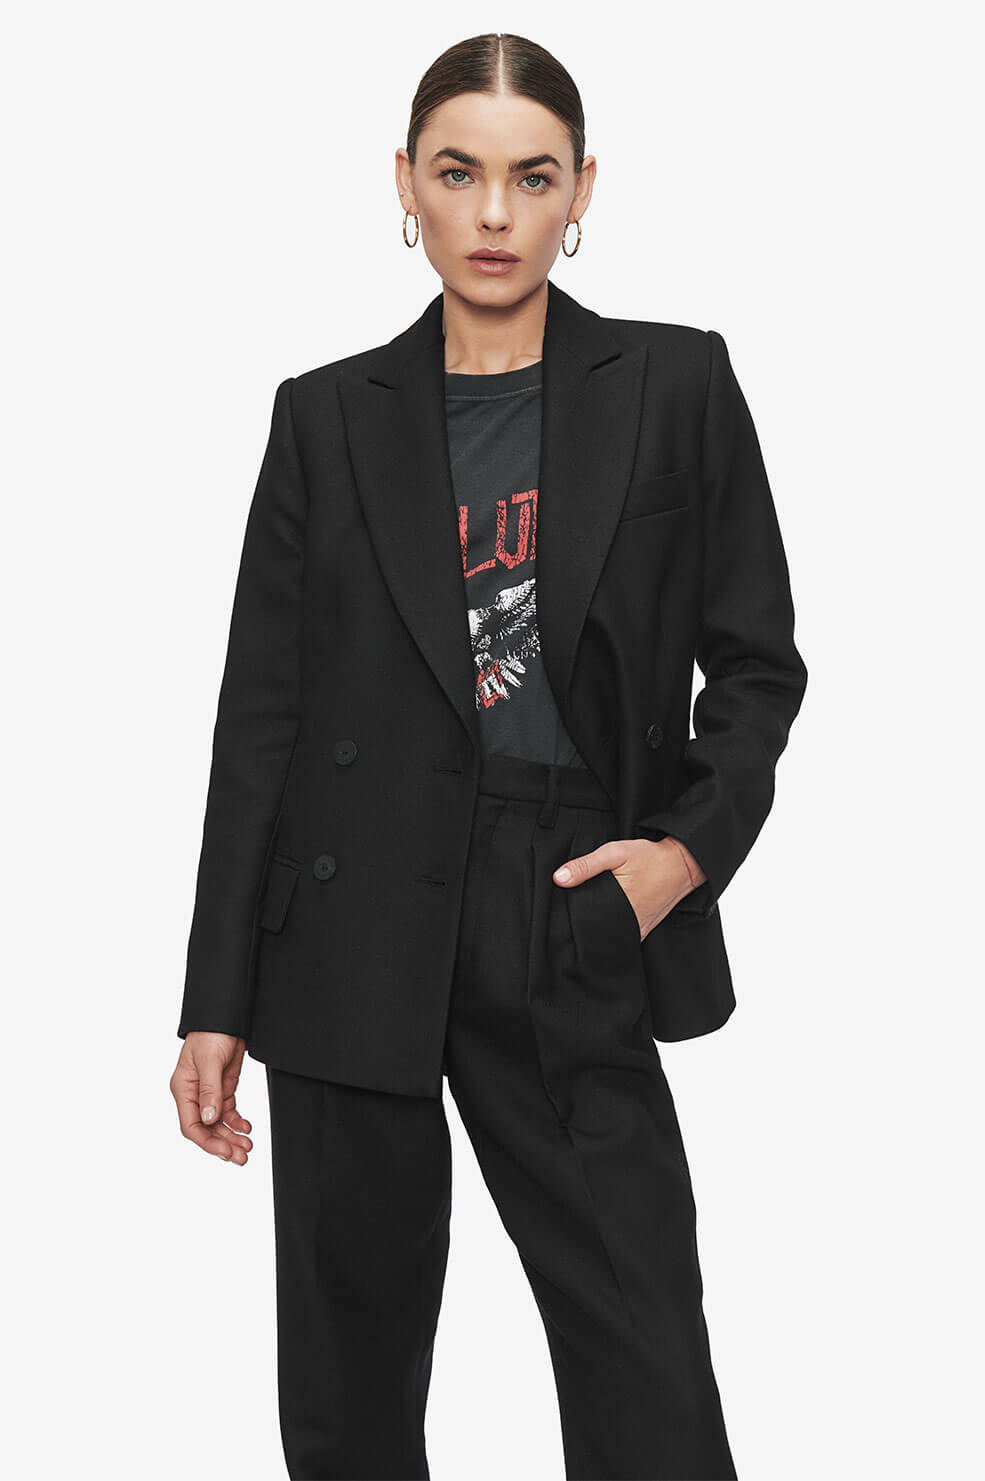 James Blazer - Black